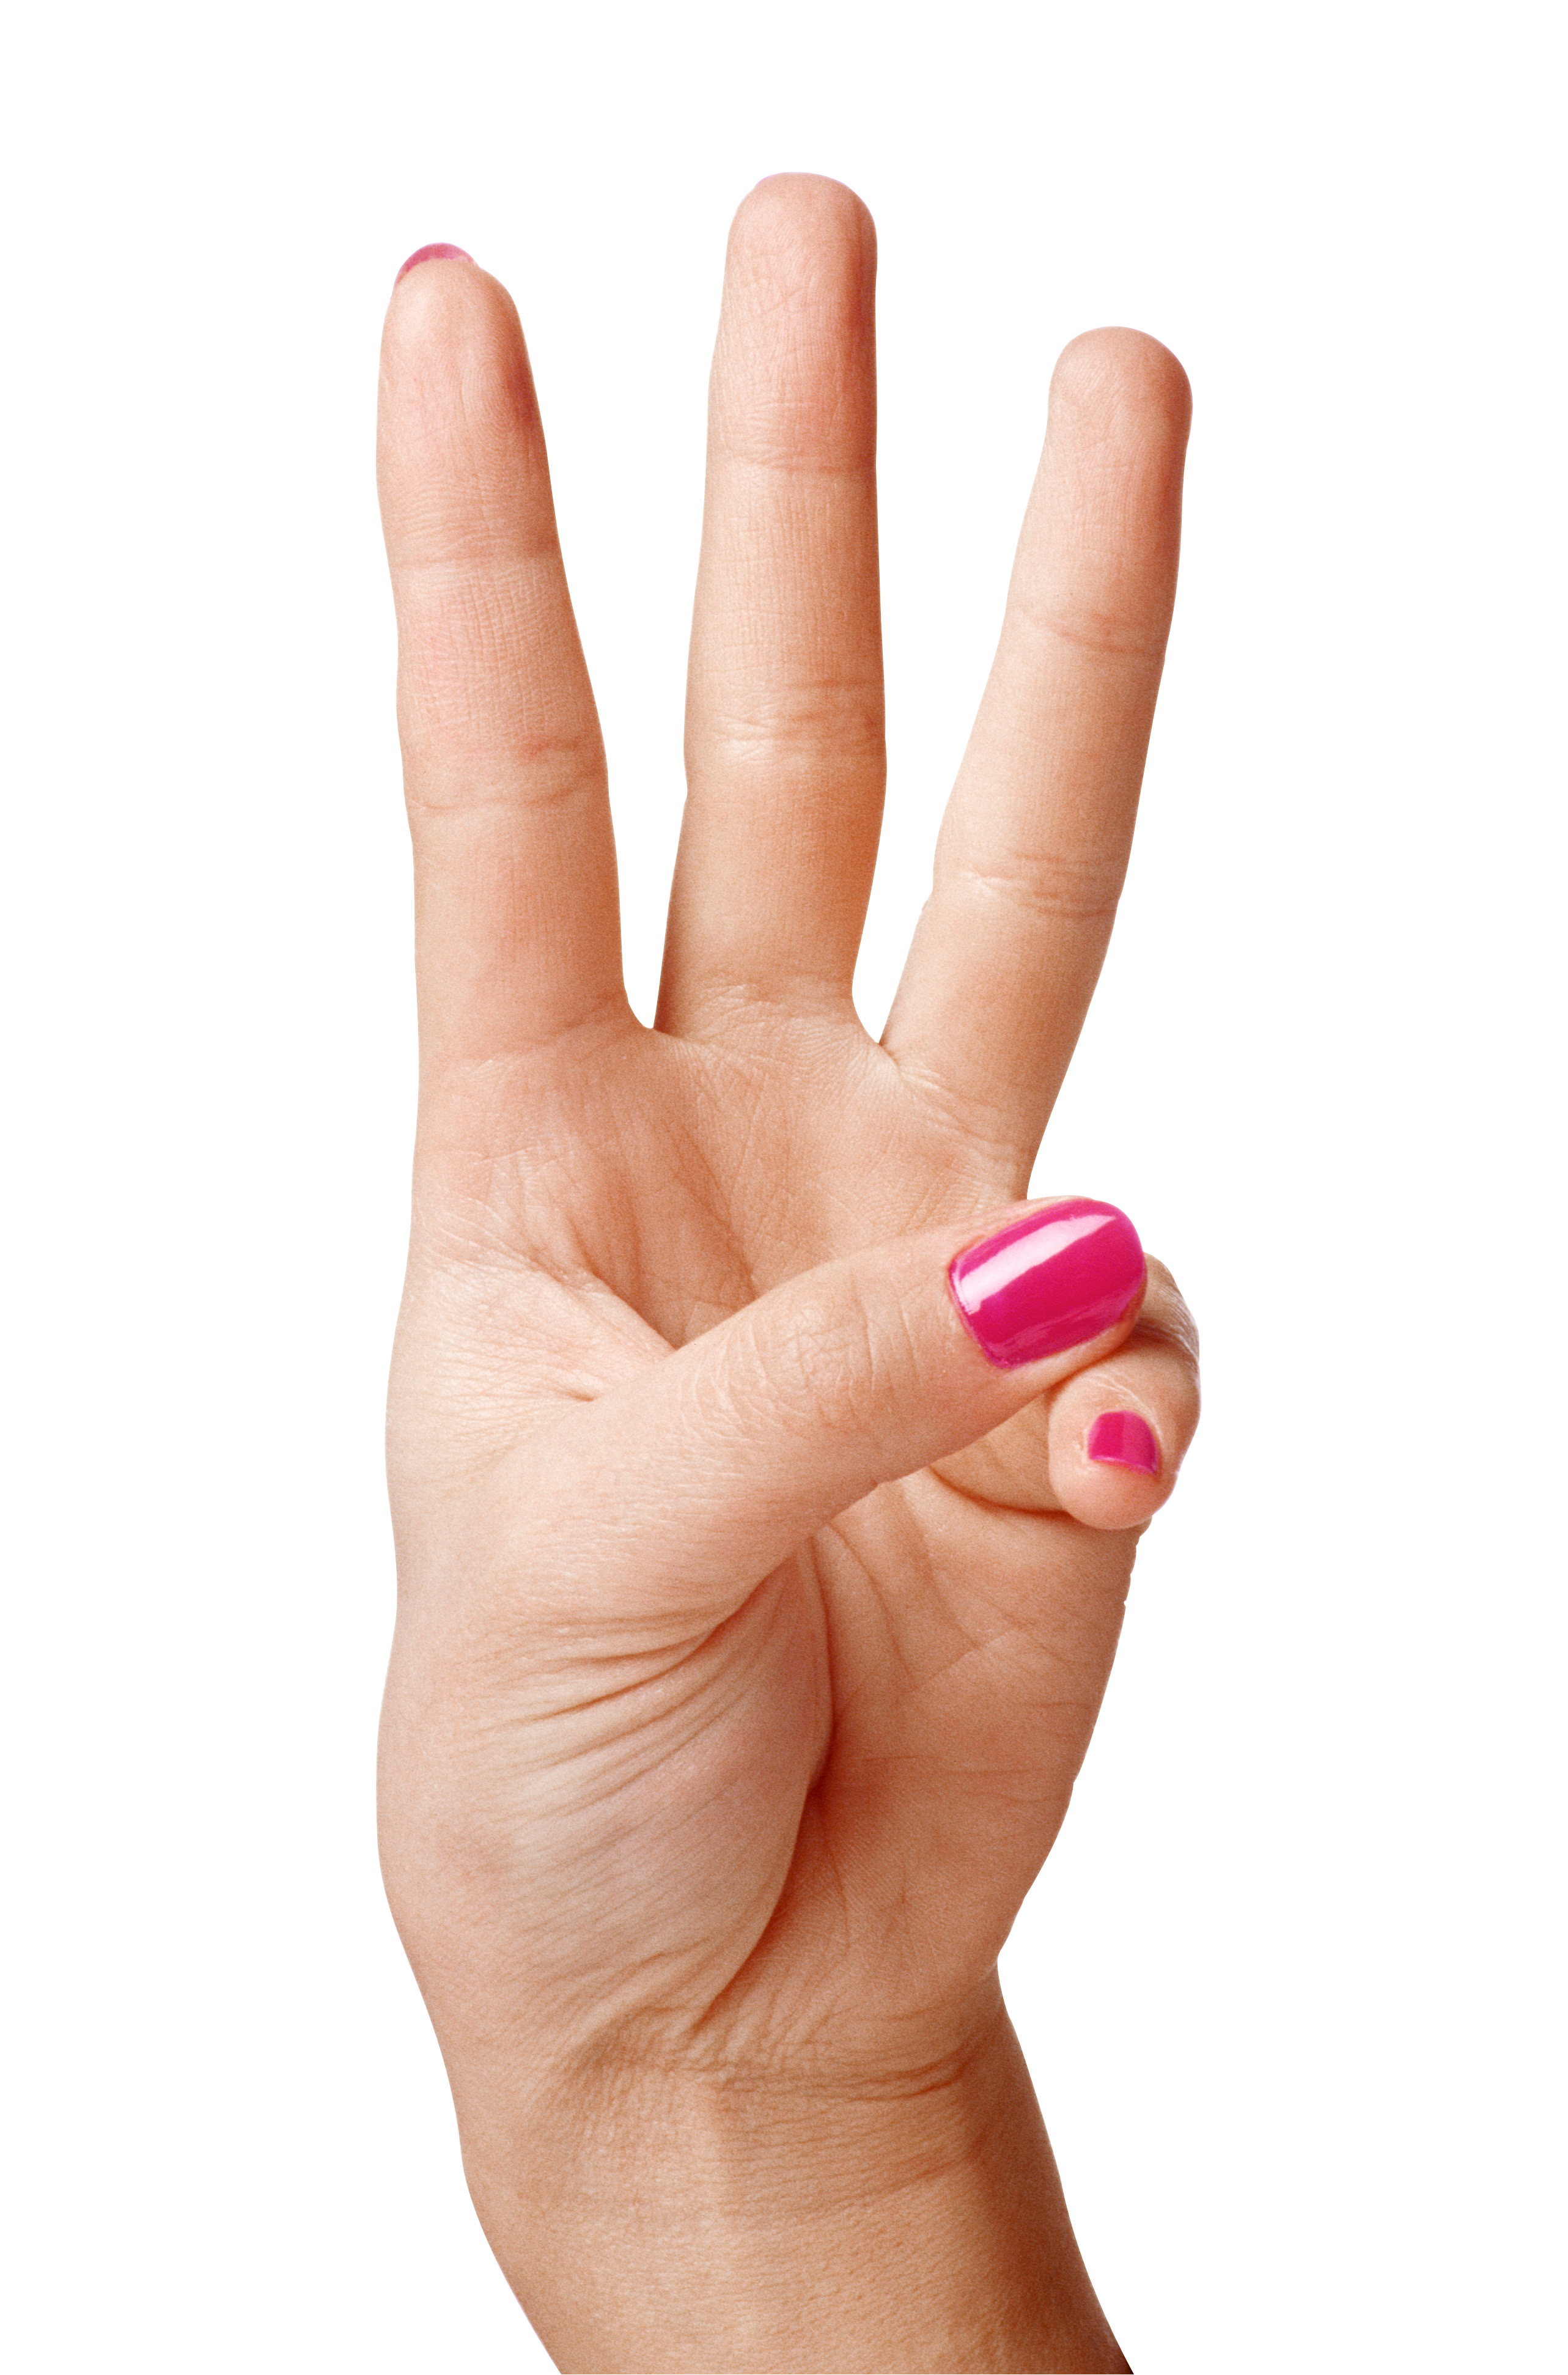 Transparent finger three. Hand showing fingers png